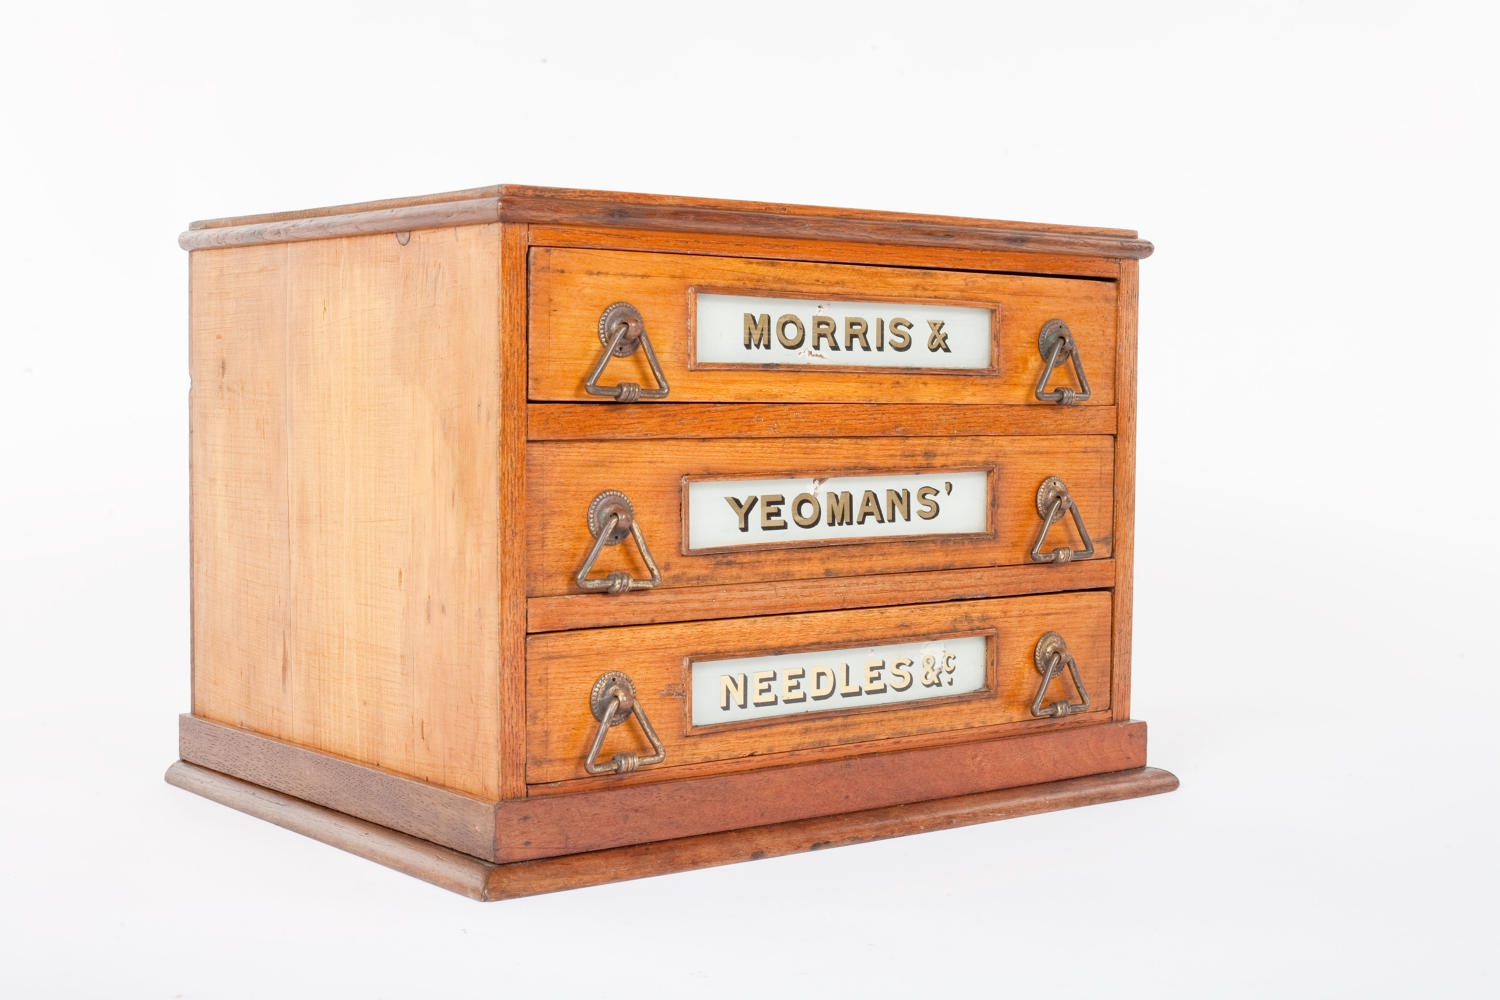 Early 20th century display cabinet for Morris and Yeomans' Needles